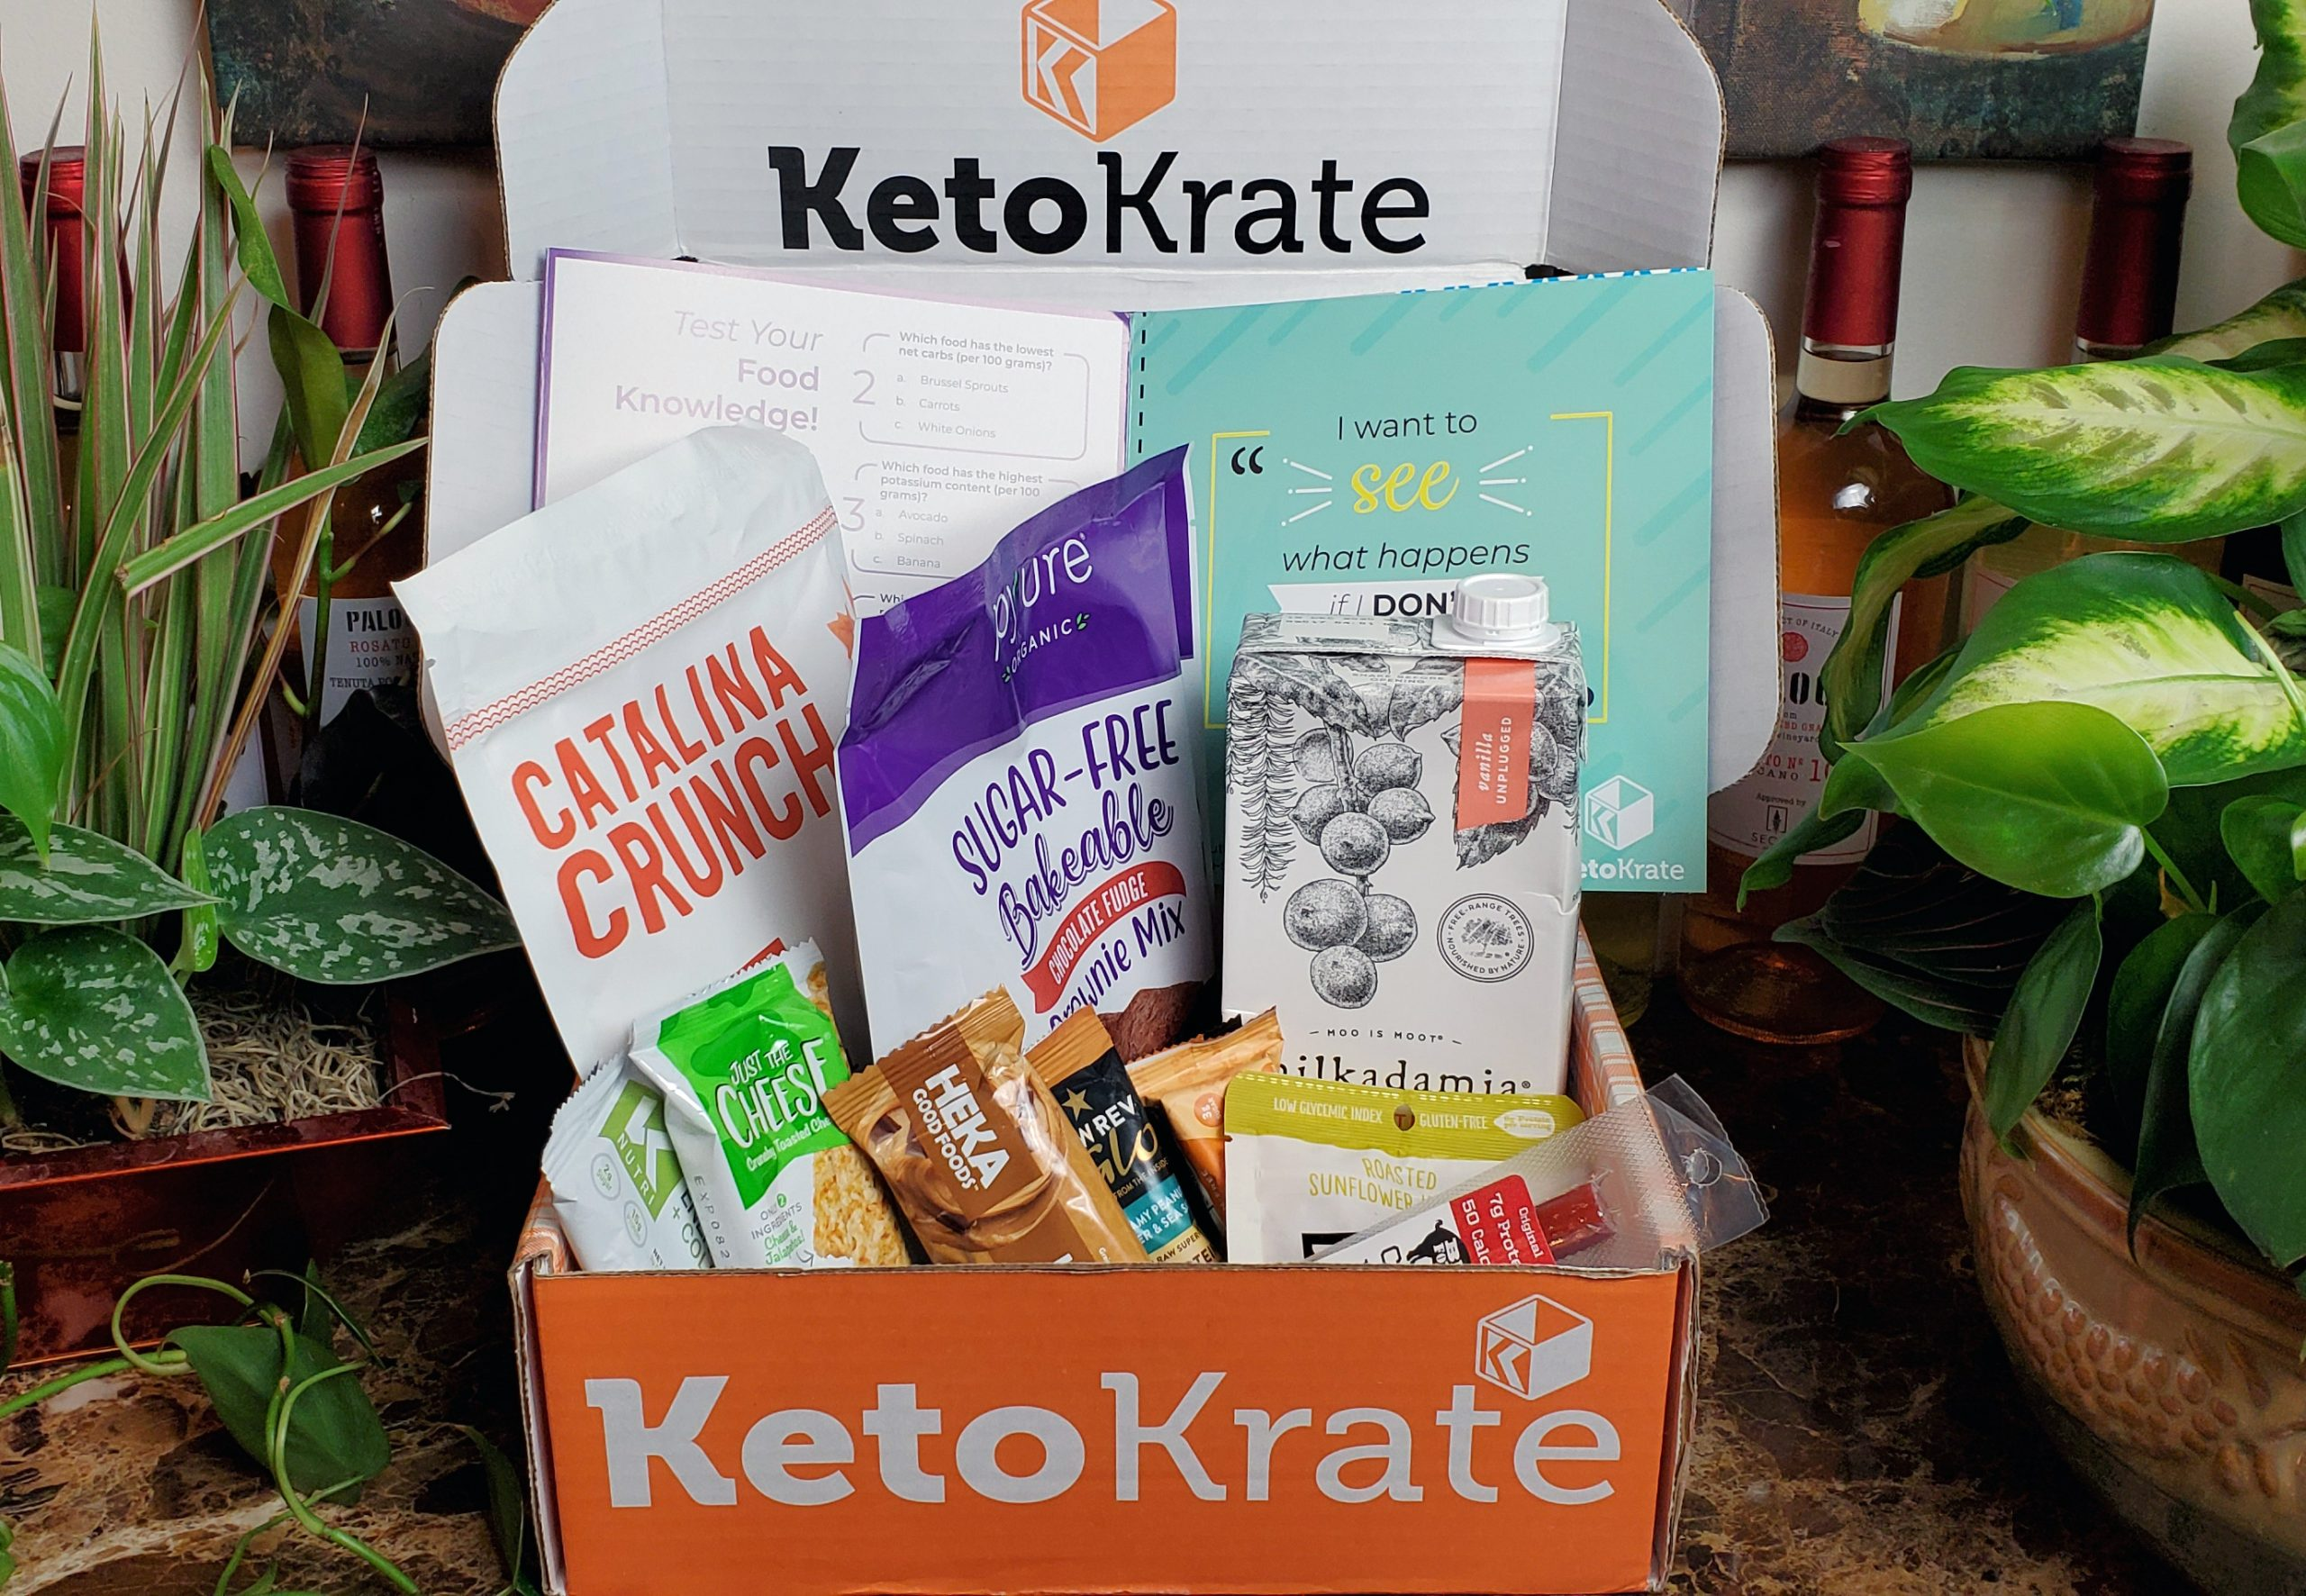 January Keto Krate Discount and Unboxing Video with Coupon Code